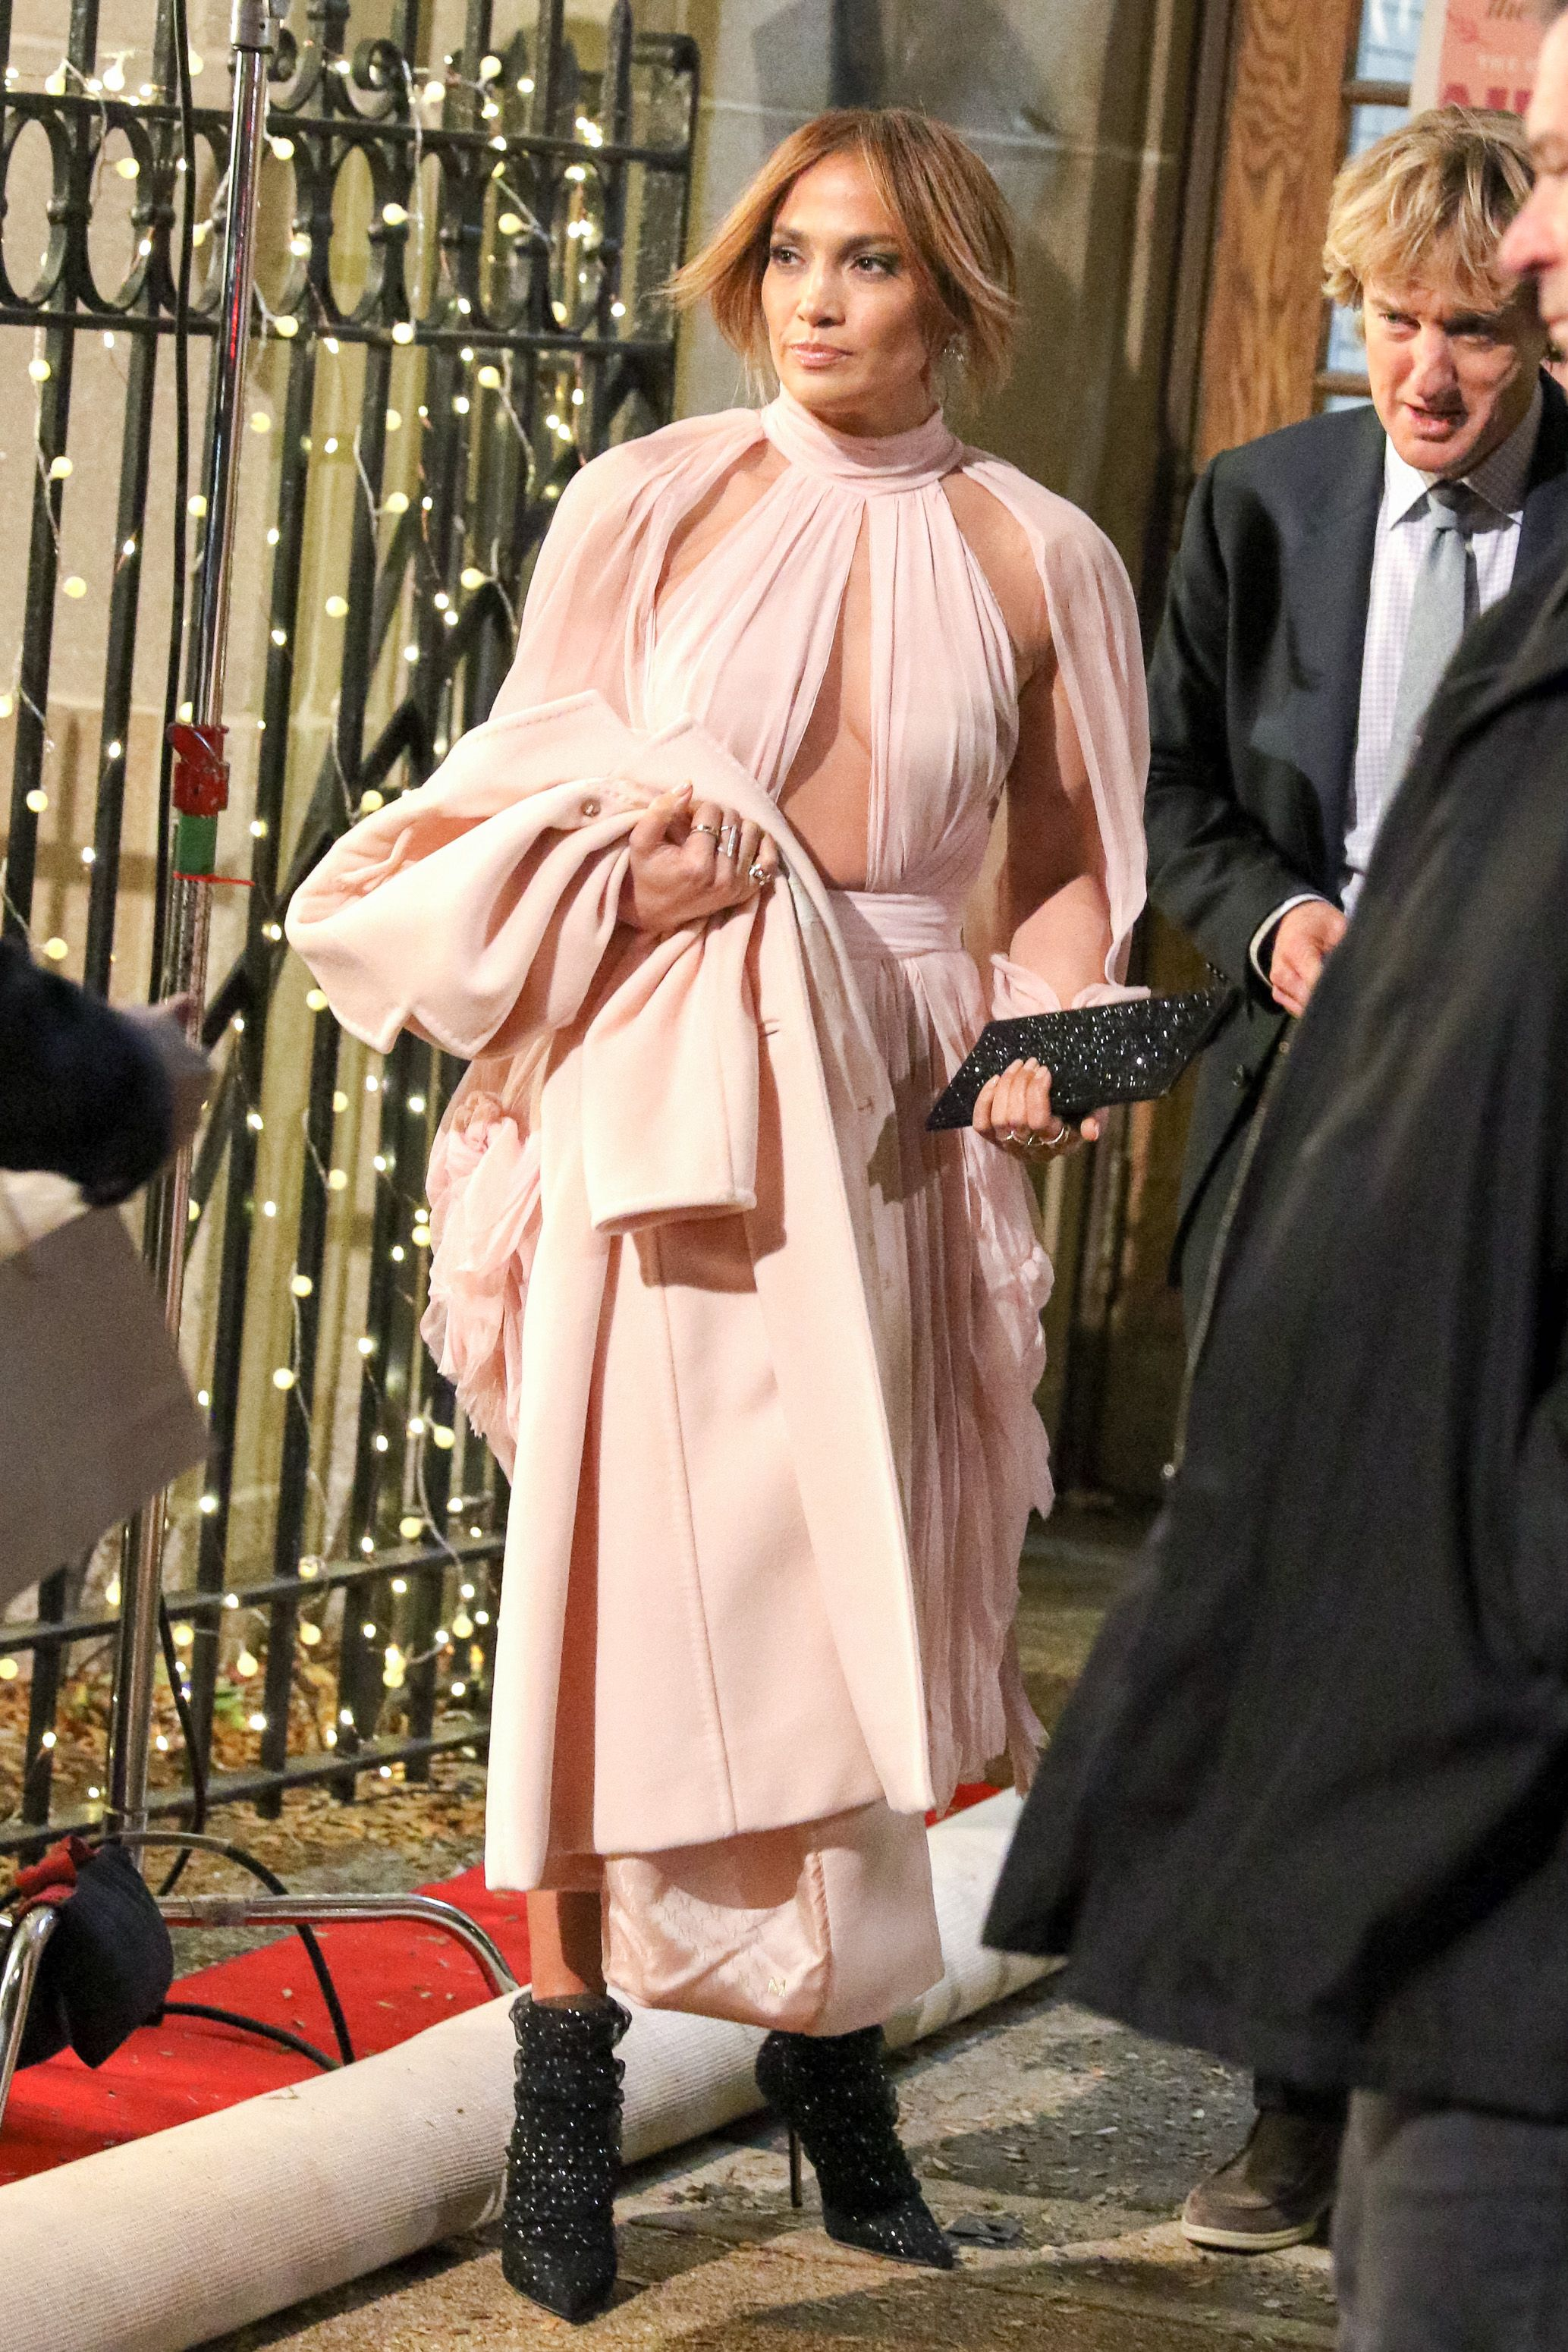 Jennifer Lopez Wore the Dreamiest Pale Pink Cutout Dress While Shooting Her Rom-Com 'Marry Me'